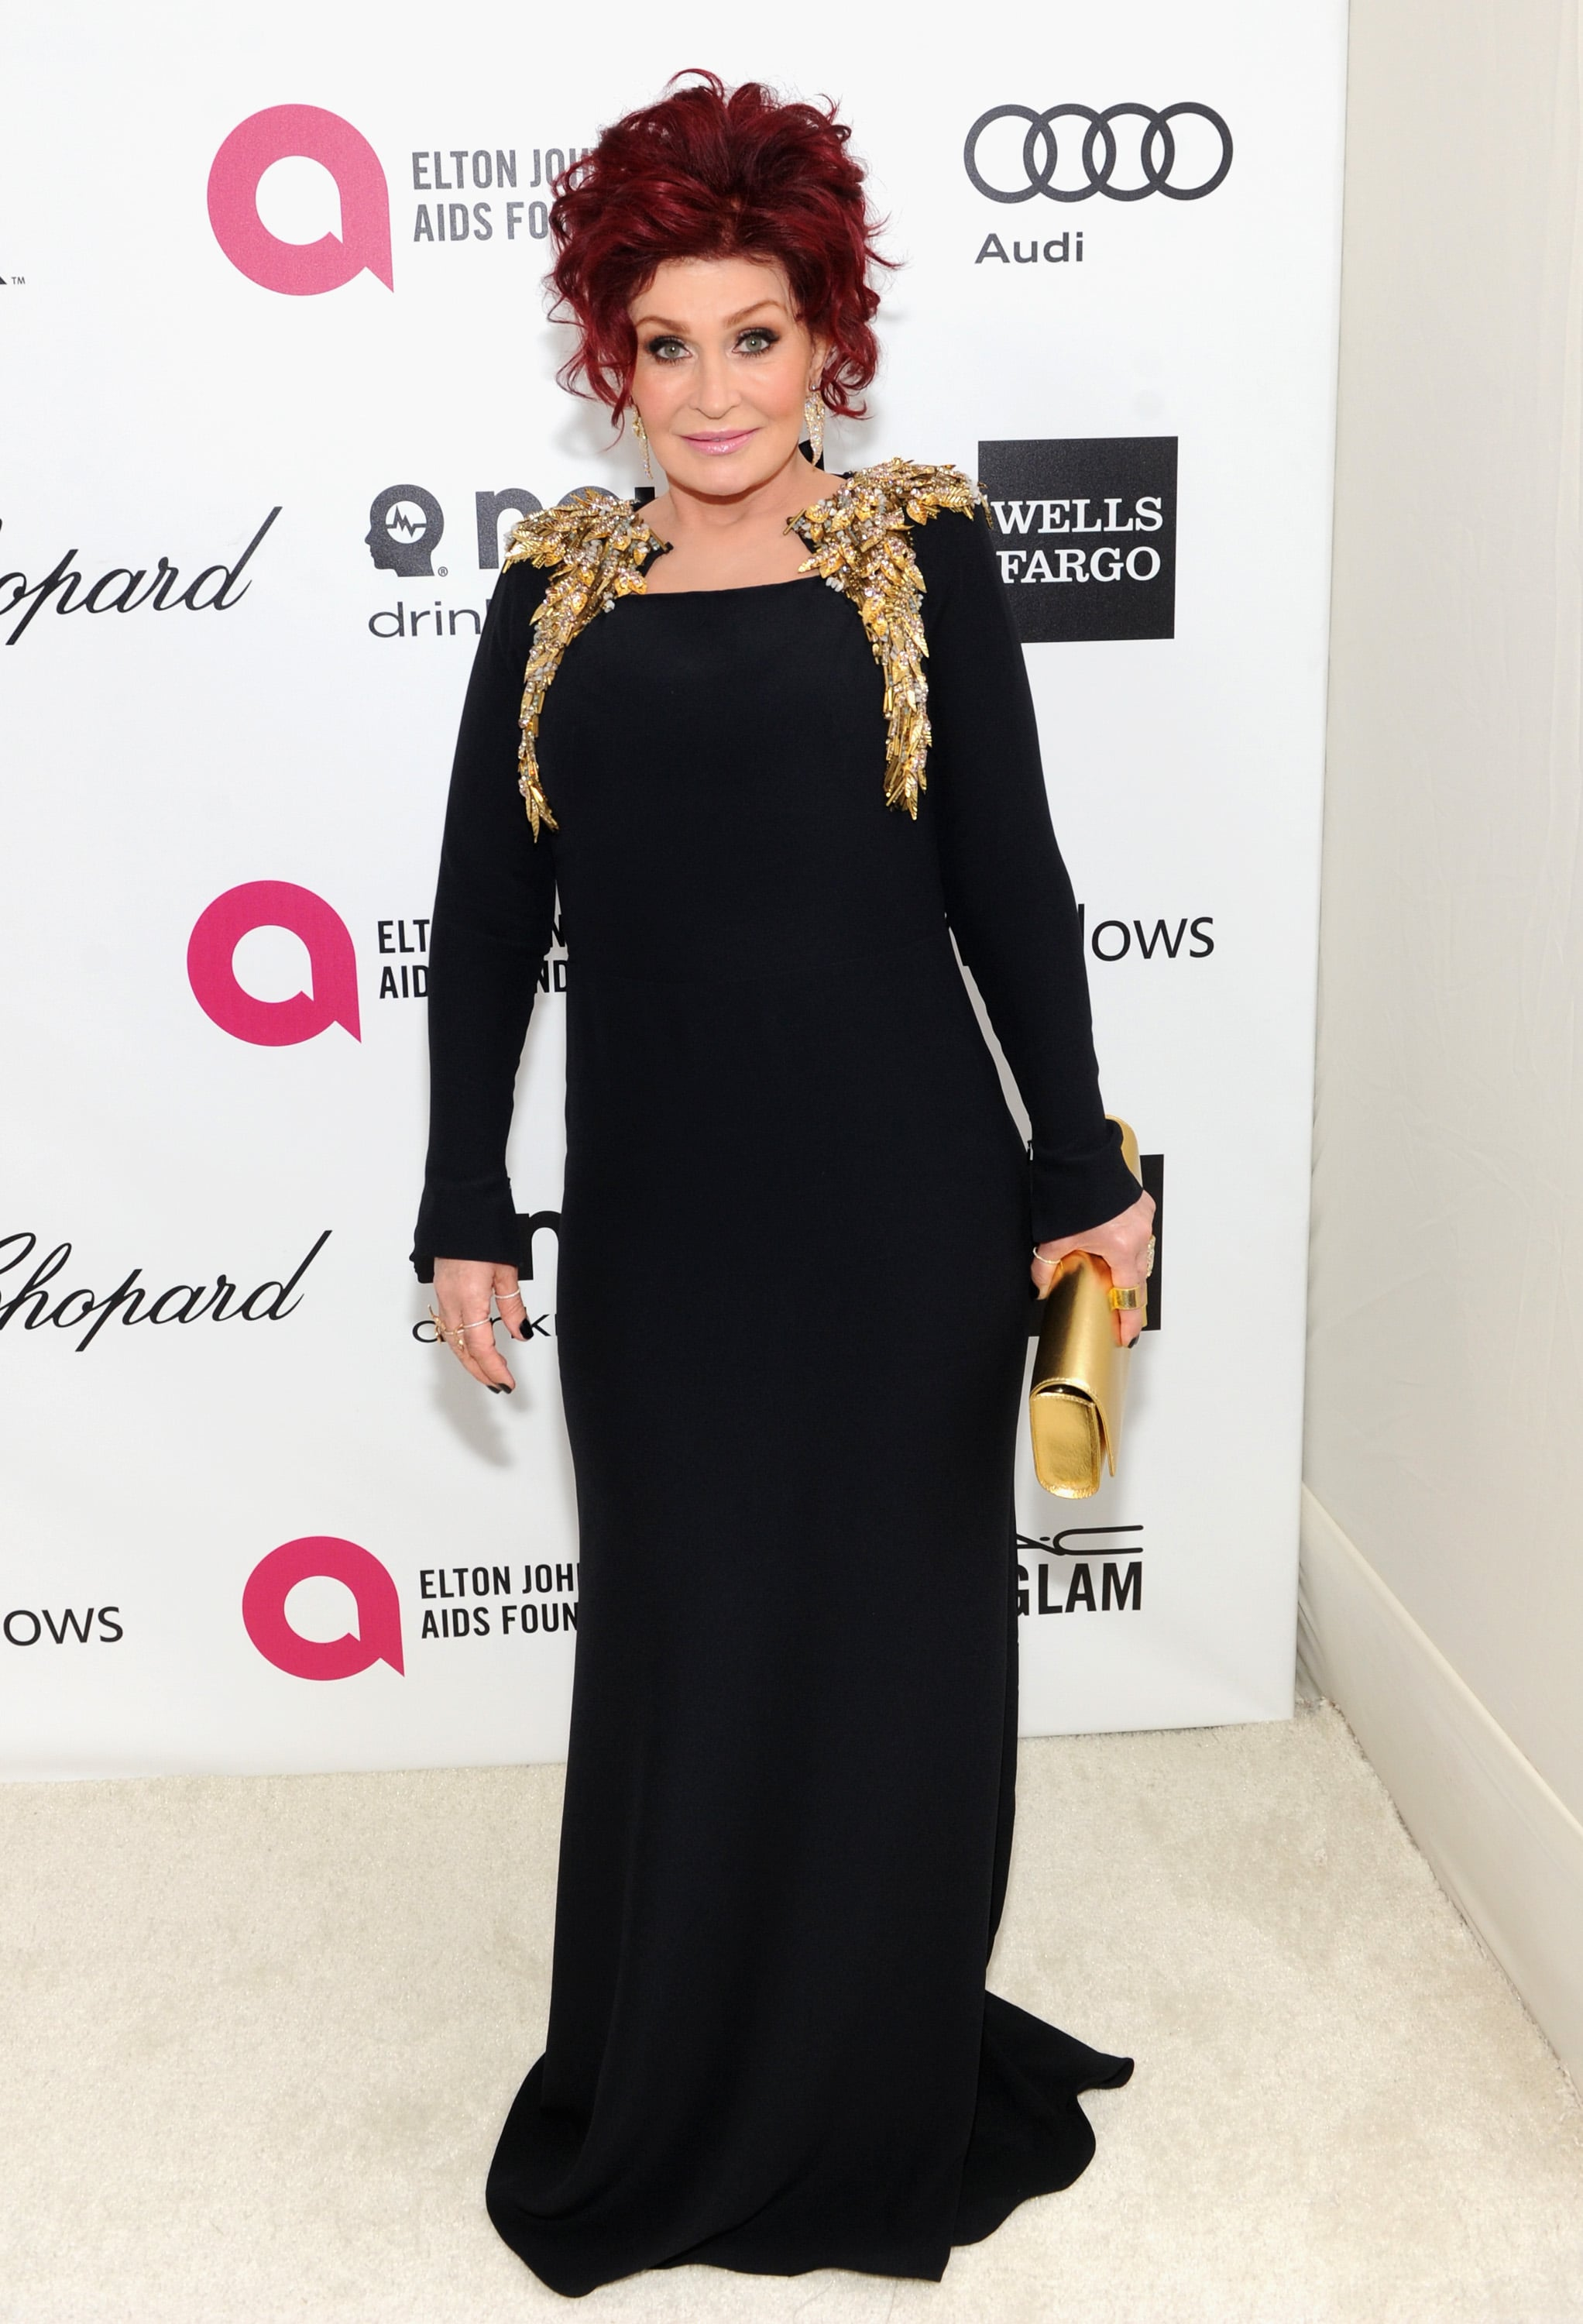 Sharon Osbourne wore a floor-length gown to the bash.